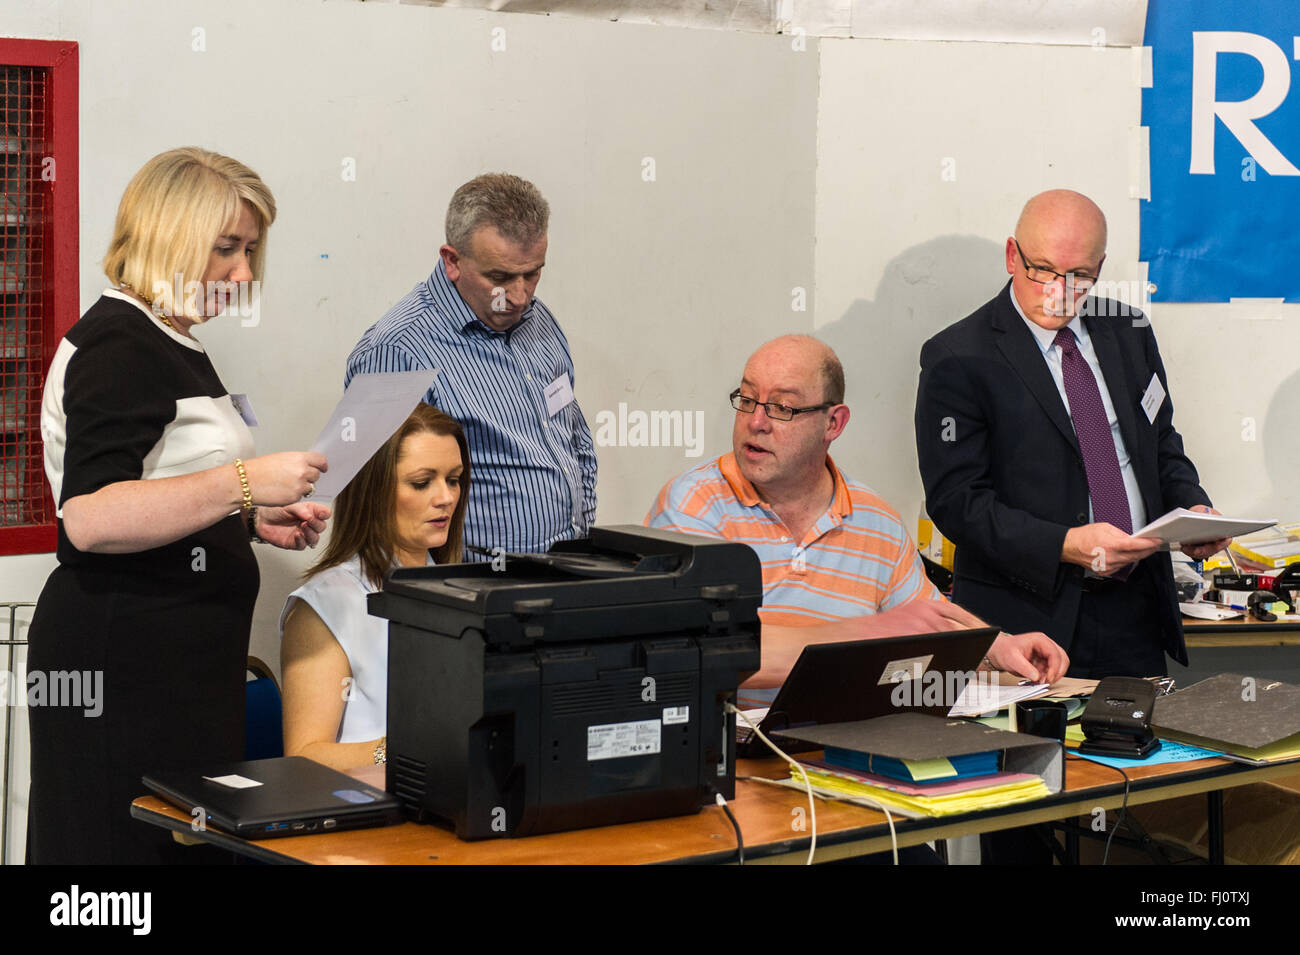 Ballincollig, Ireland. 27th February, 2016. Cork North West Returning Officer, Sinead McNamara consults with colleagues Stock Photo